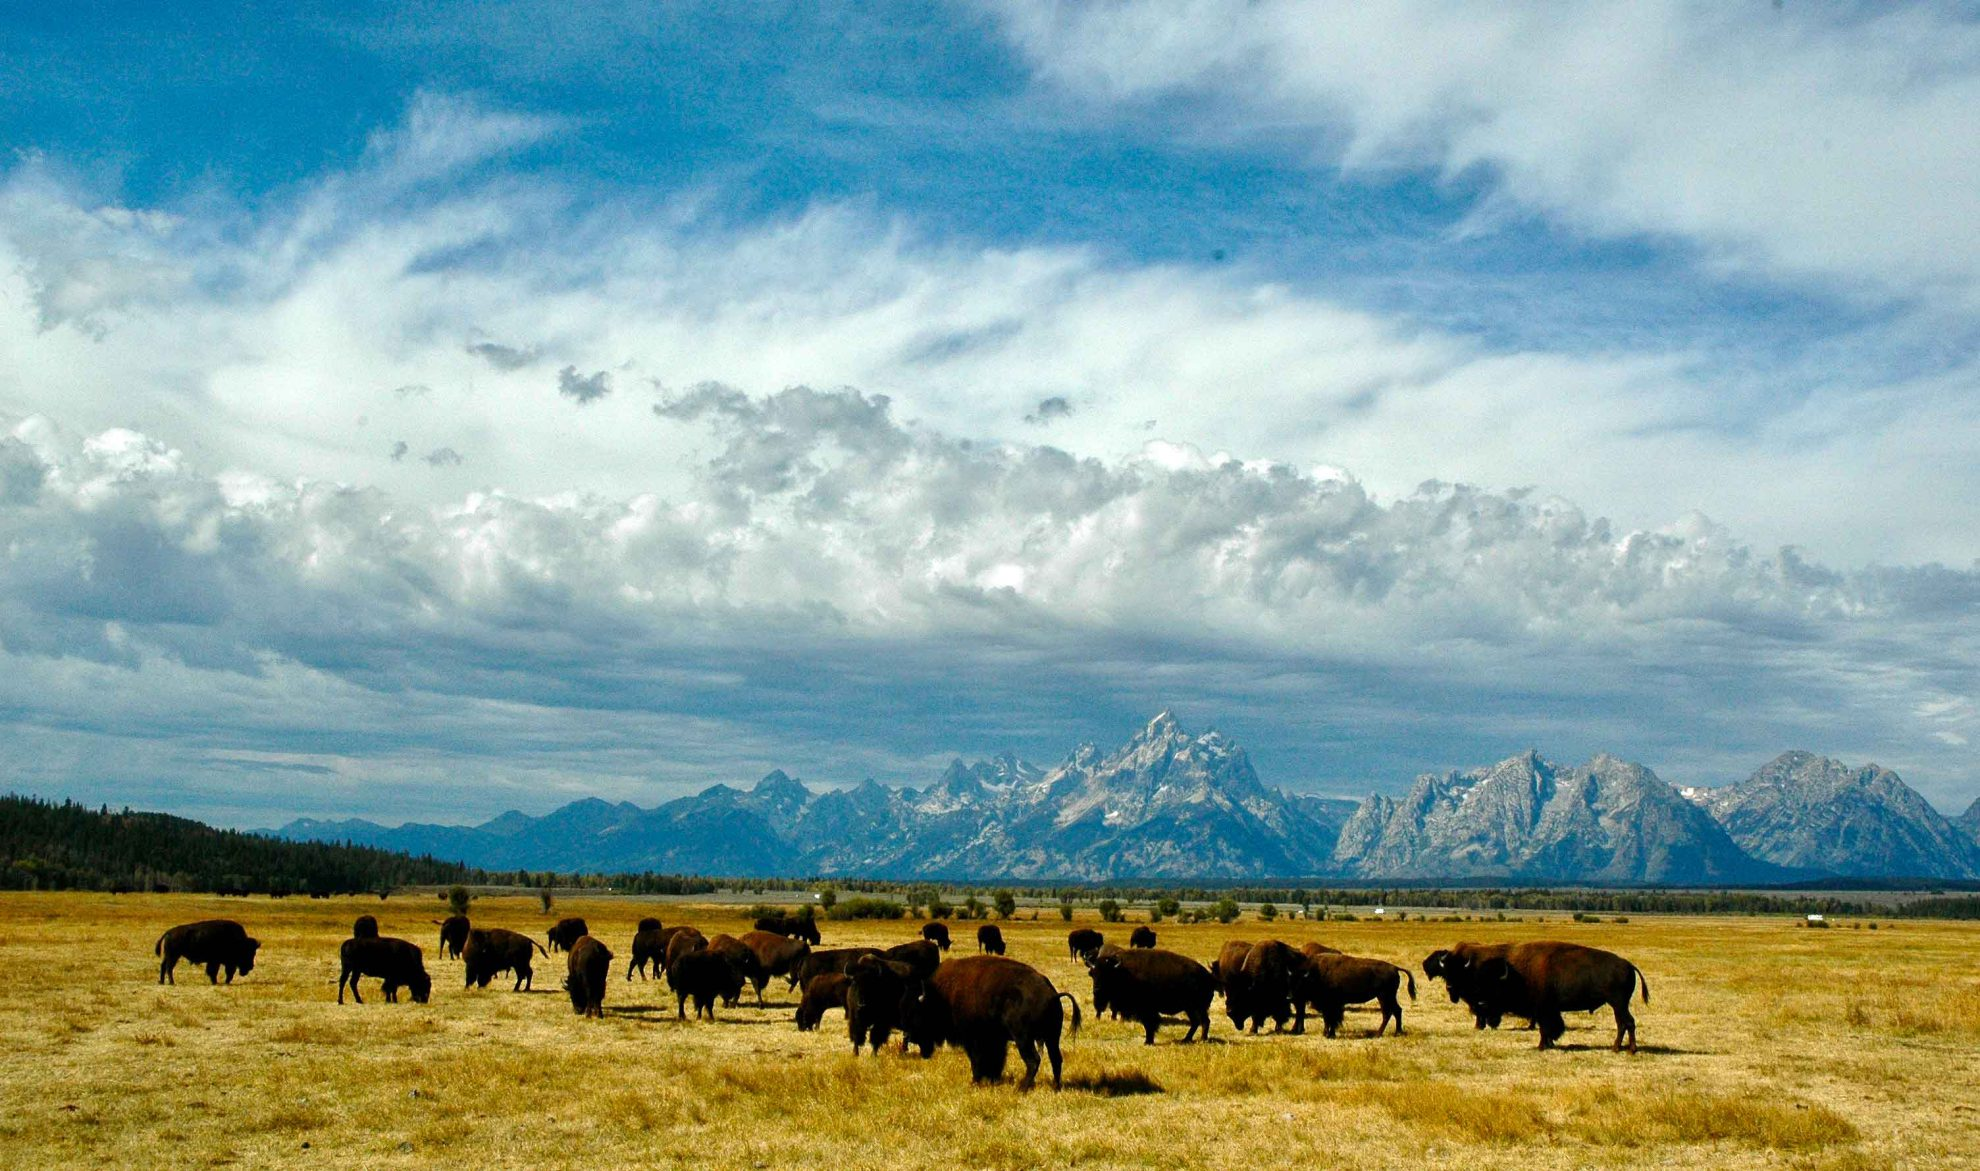 A herd of bison on dry grassland under an expansive sky with mountains in the distance